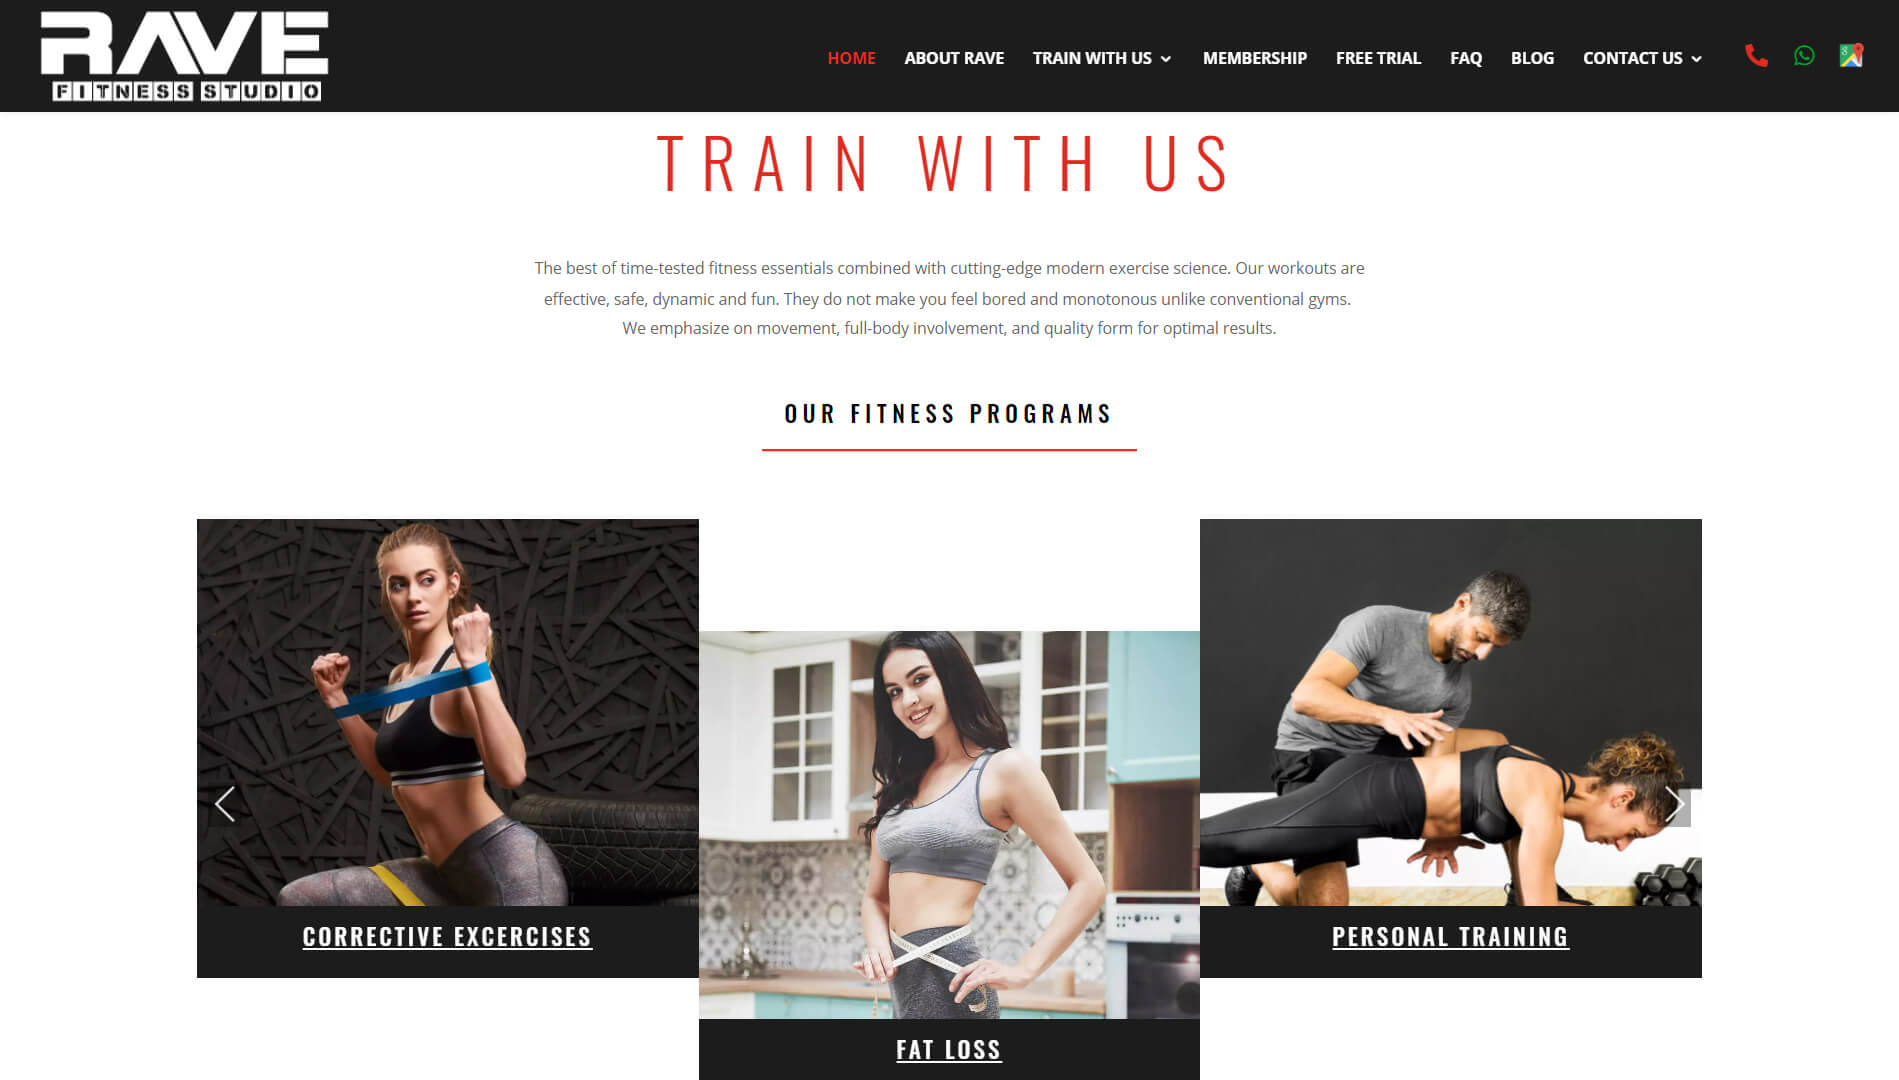 Rave Fitness Train with us